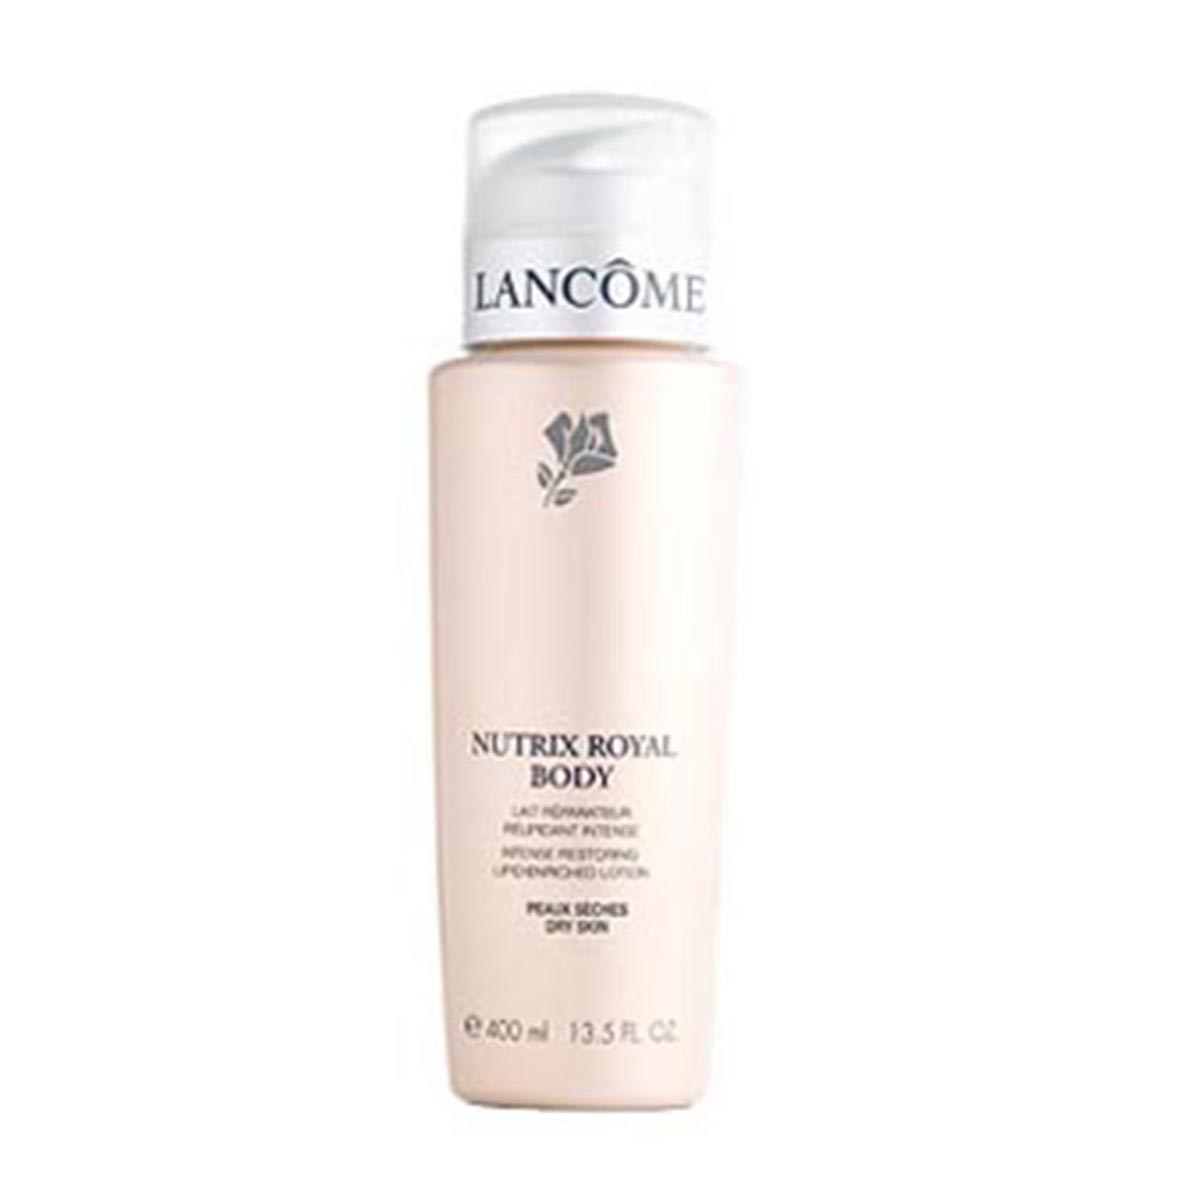 Lancome nutri royal body milk 400ml